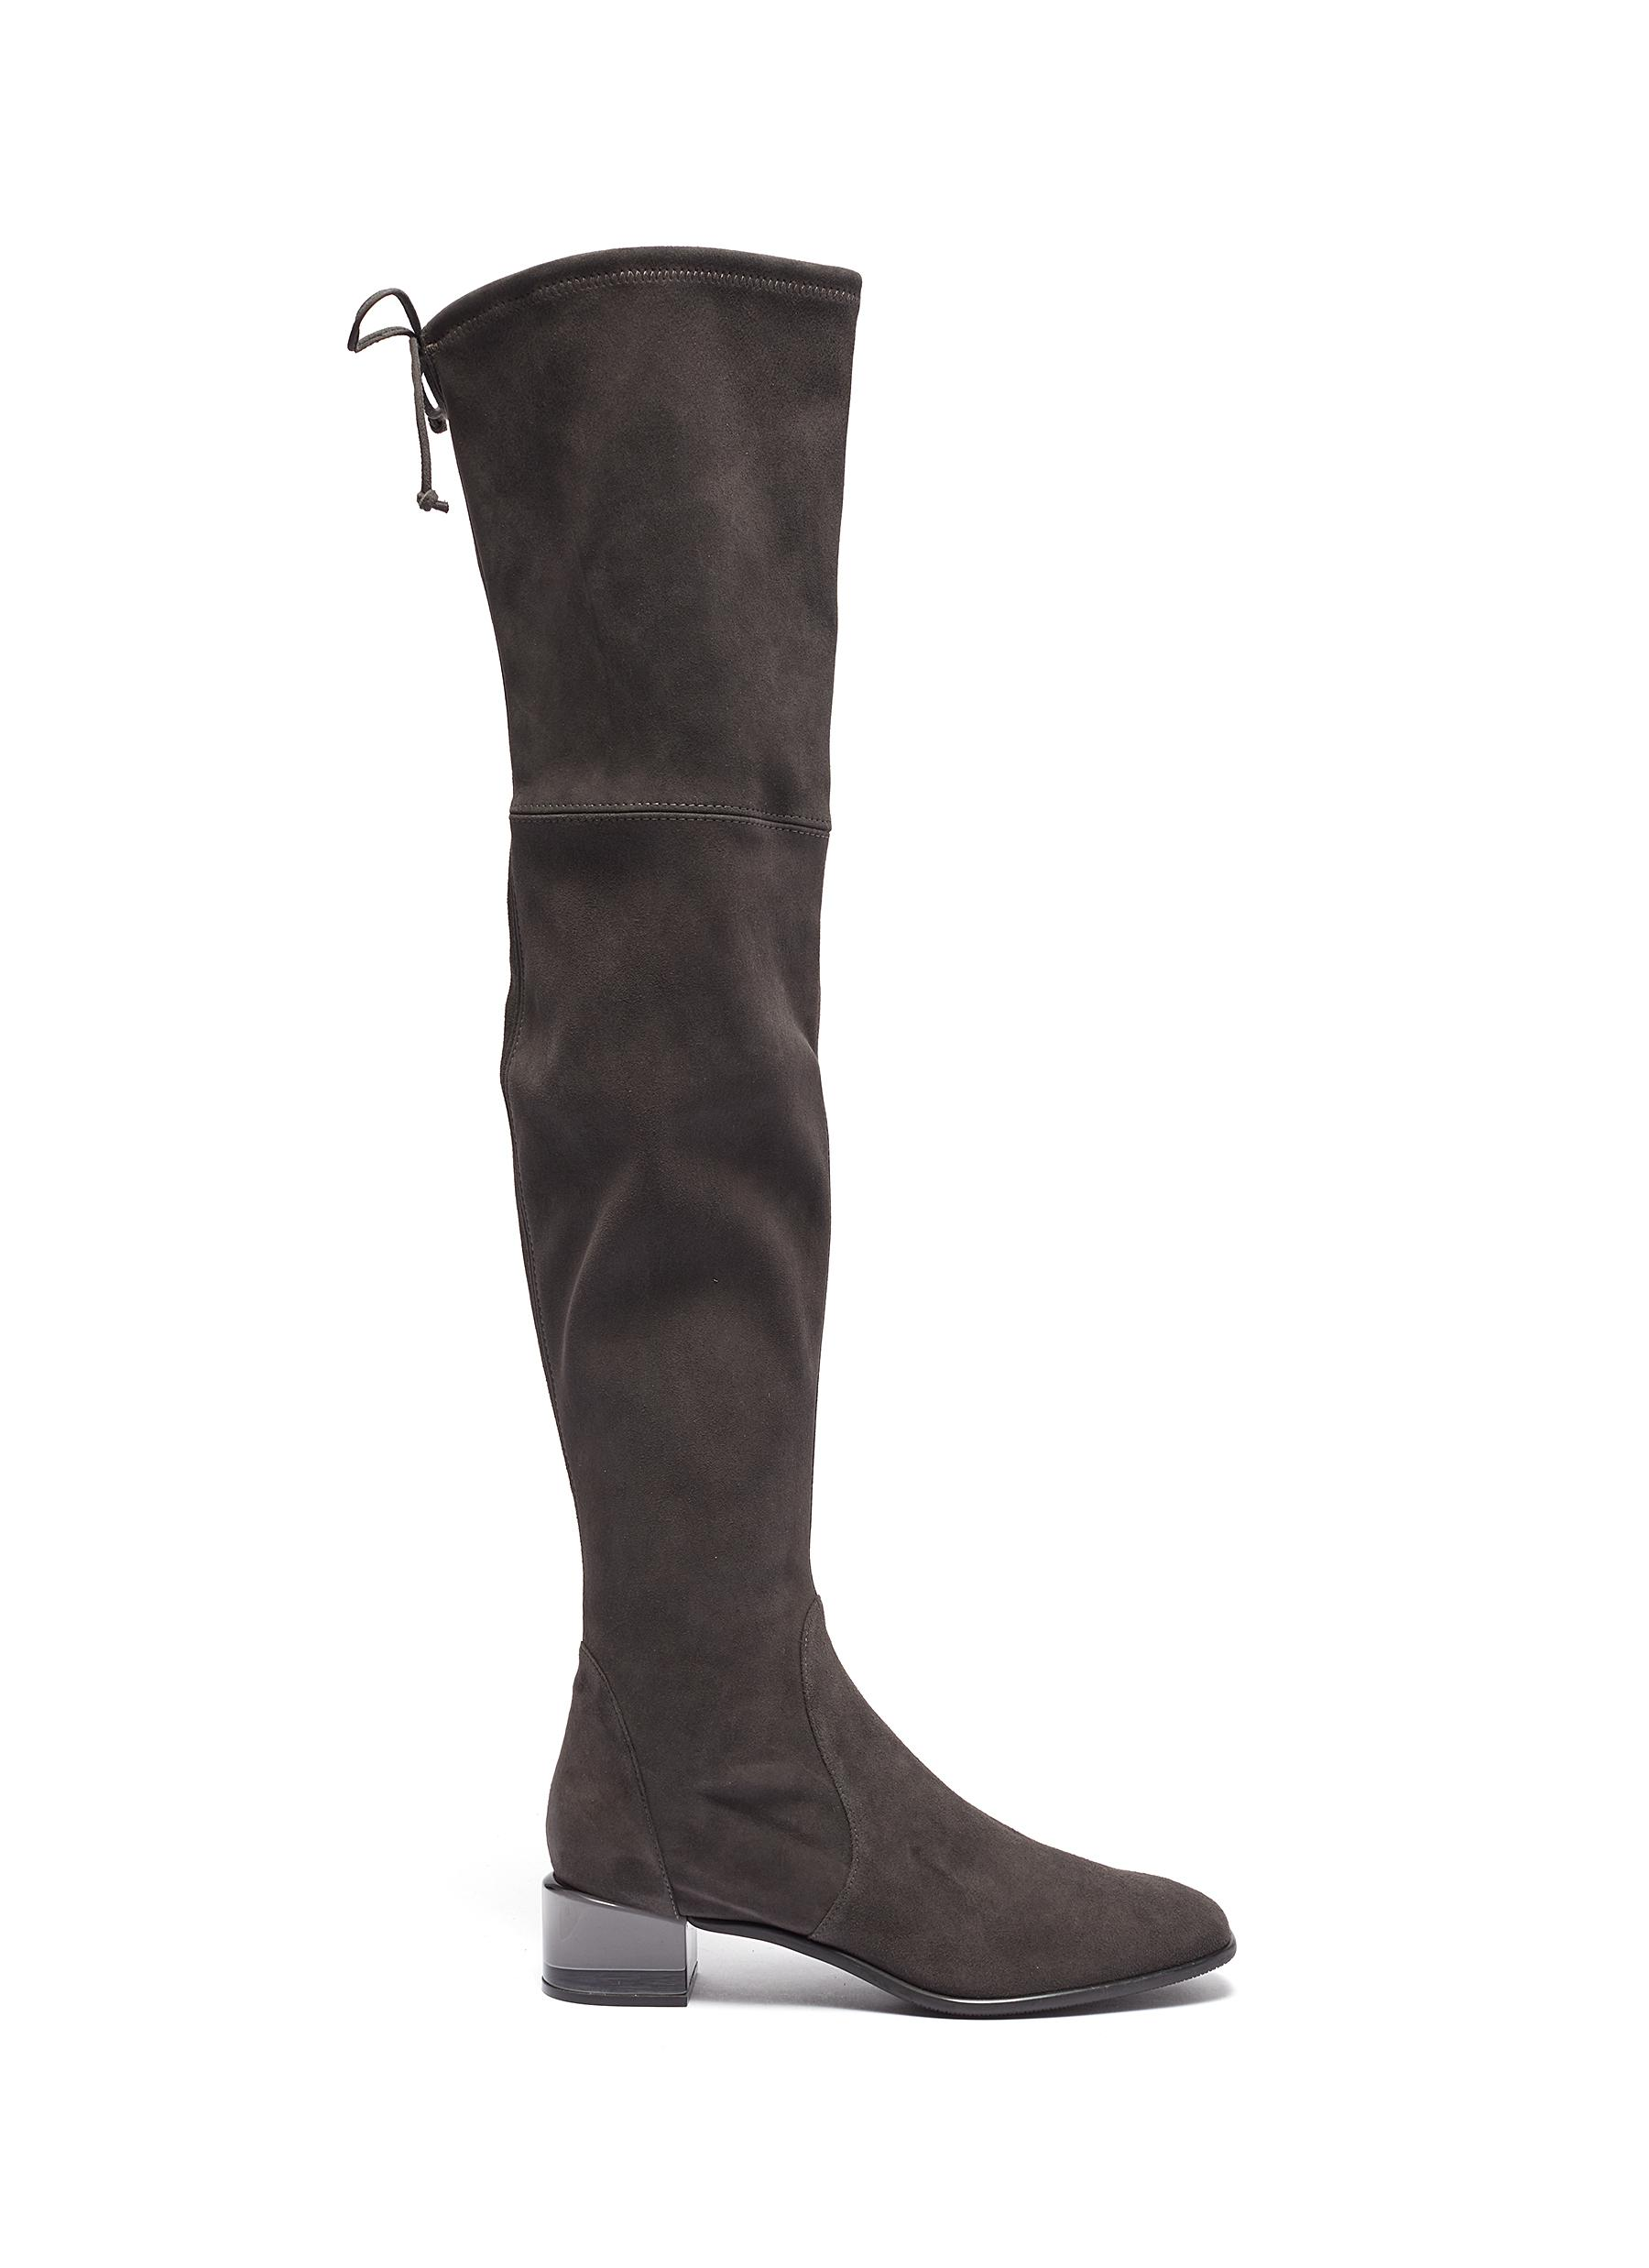 Charolet clear heel thigh high suede boots by Stuart Weitzman